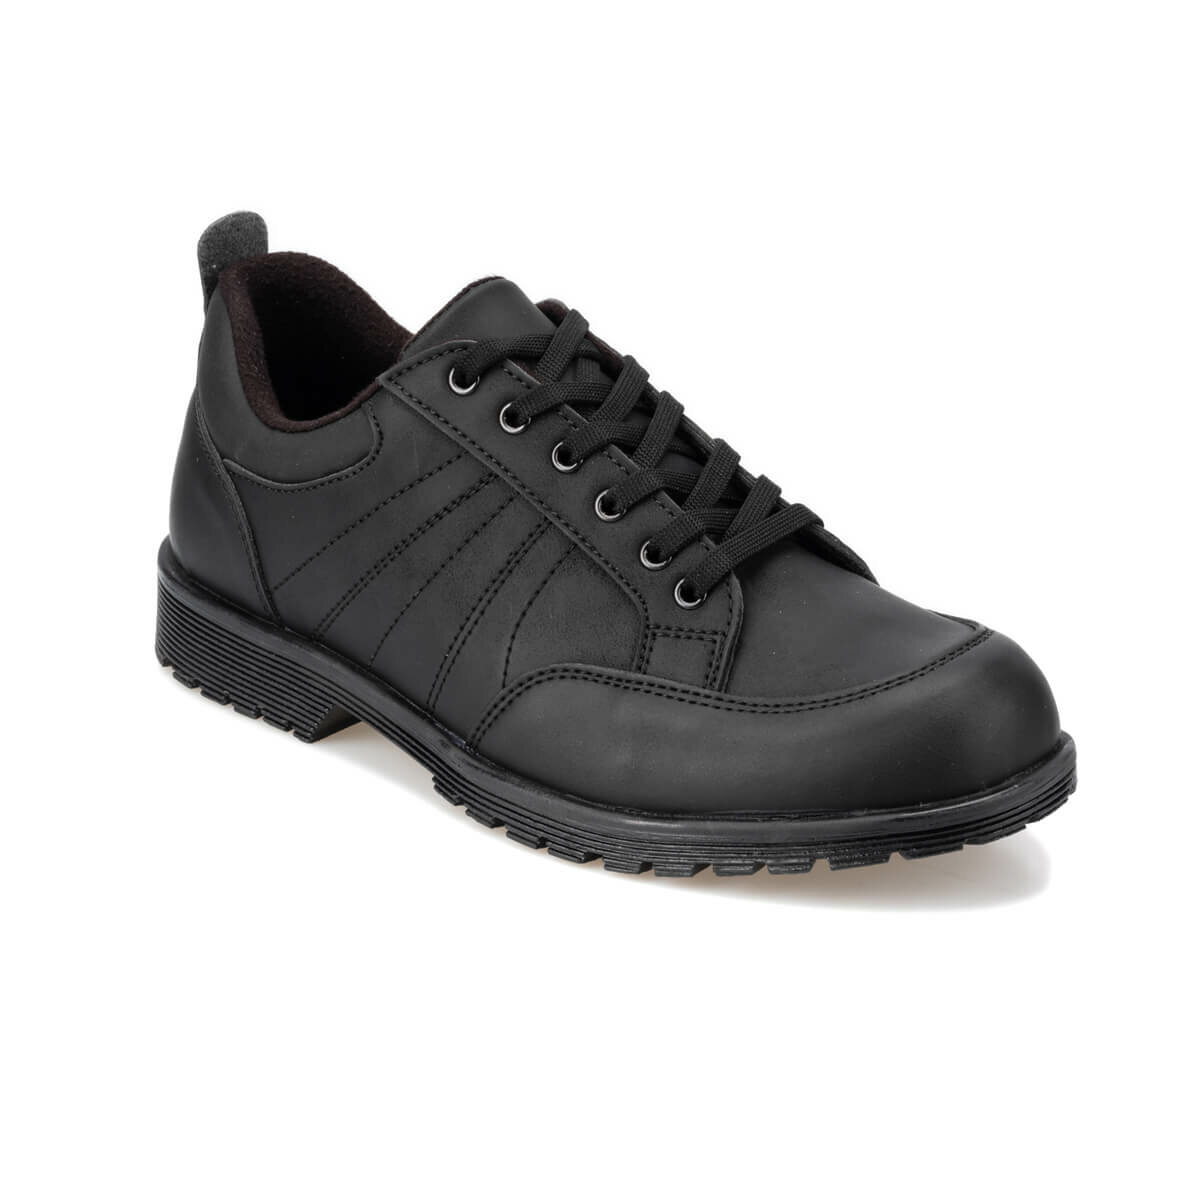 FLO 92.356077.M Black Male Shoes Polaris